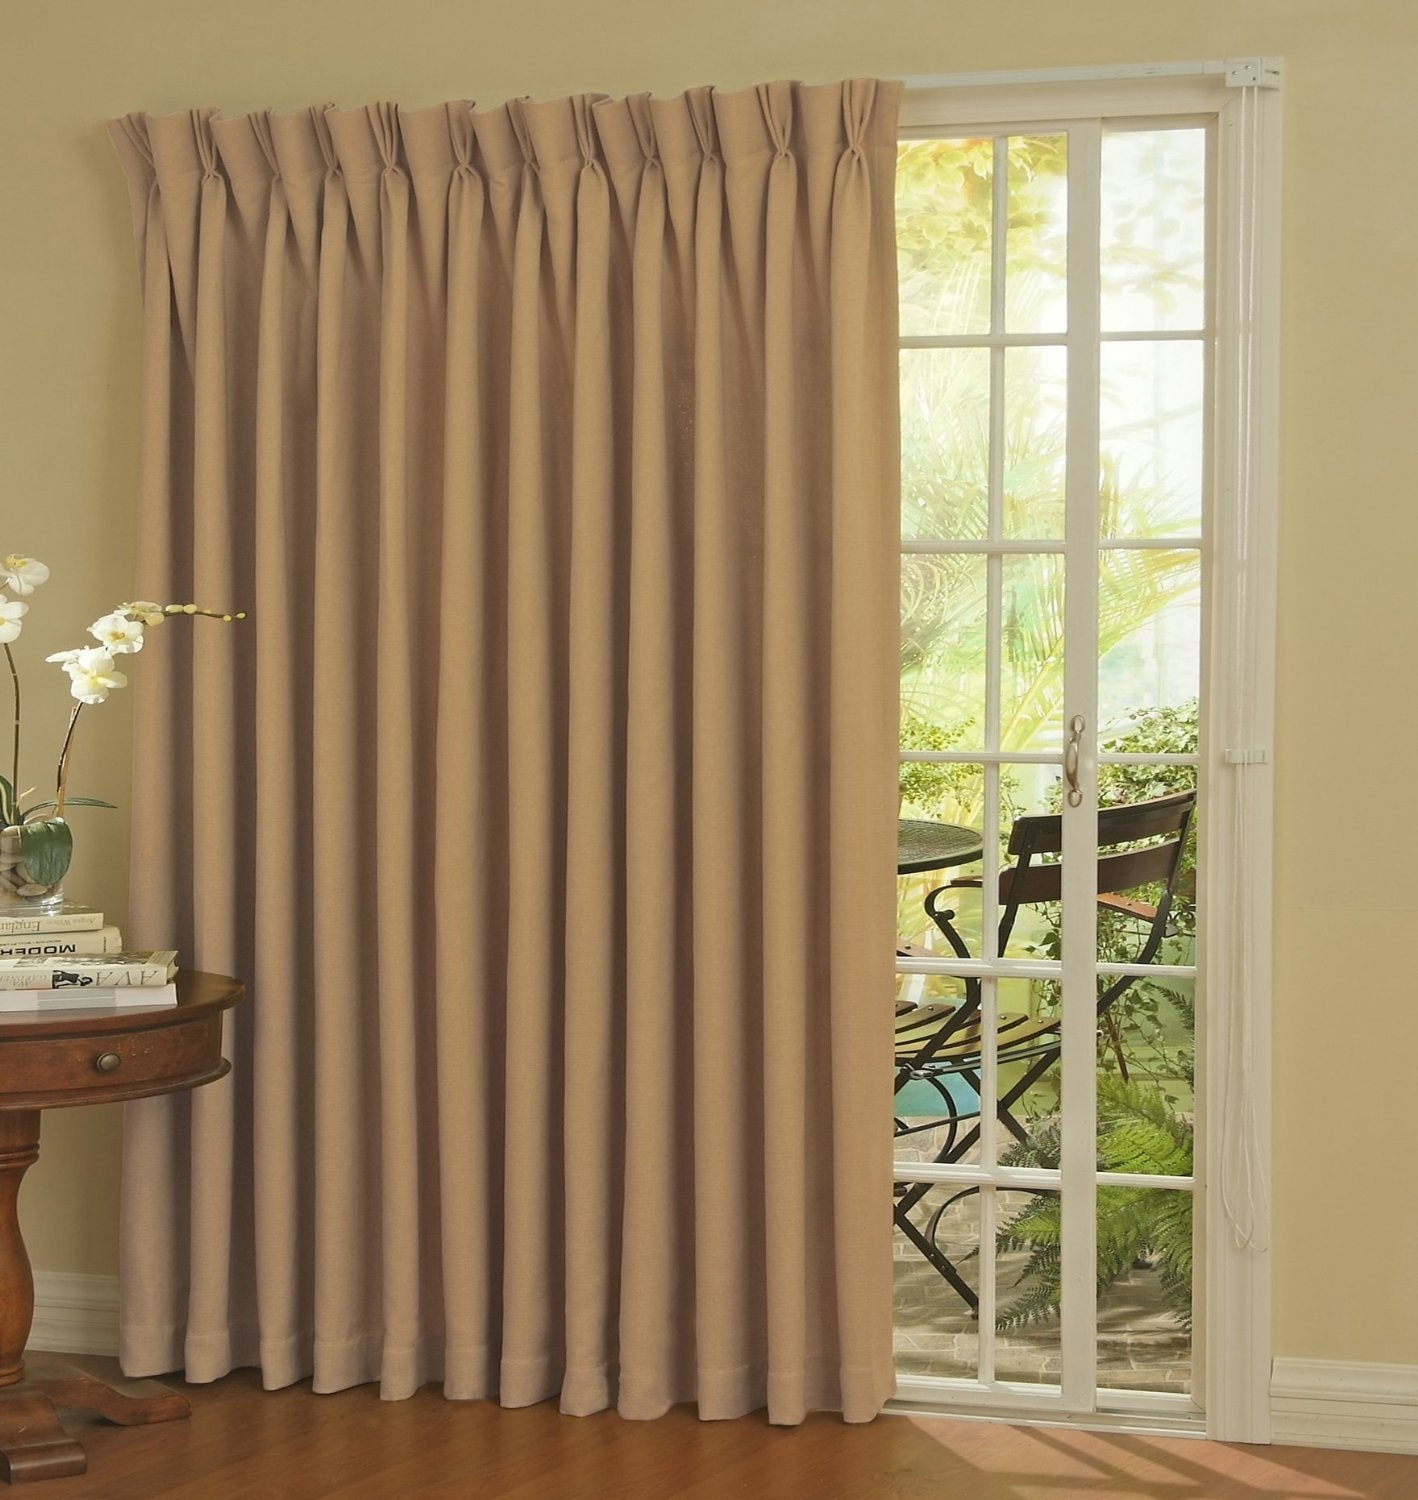 Single Panel Curtain For Sliding Glass Door Within Single Curtains For Doors (Image 11 of 15)